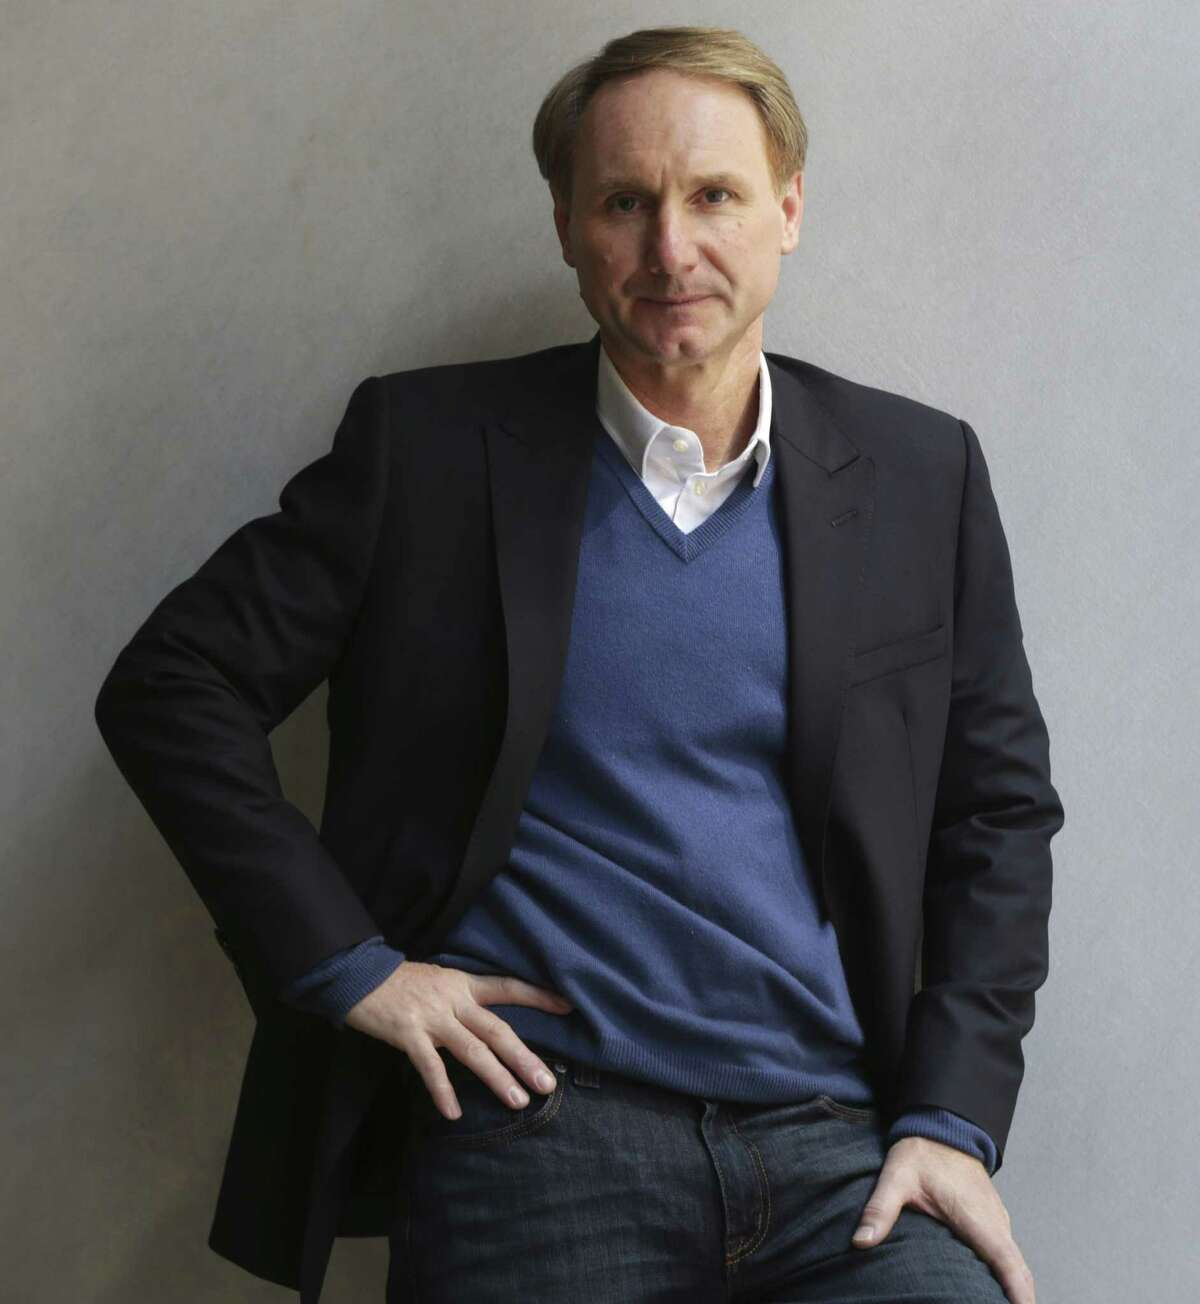 """FILE - In this May 13, 2013 file photo, author Dan Brown poses for a portrait in New York. His new book, """"Inferno,"""" published by Doubleday released on May 14. No mega-sellers came out in 2013, nothing that compared with E L James' """"Fifty Shades of Gray"""" or Stieg Larsson's crime novels. Adult readers turned to dependable favorites such as Dan Brown and Khaled Hosseini, while teens and grade-schoolers stuck with Rick Riordan, Jeff Kinney and Veronica Roth, whose """"Divergent"""" series is set to debut on the big screen in 2014. (AP Photo/Seth Wenig, File) ORG XMIT: NYET341"""